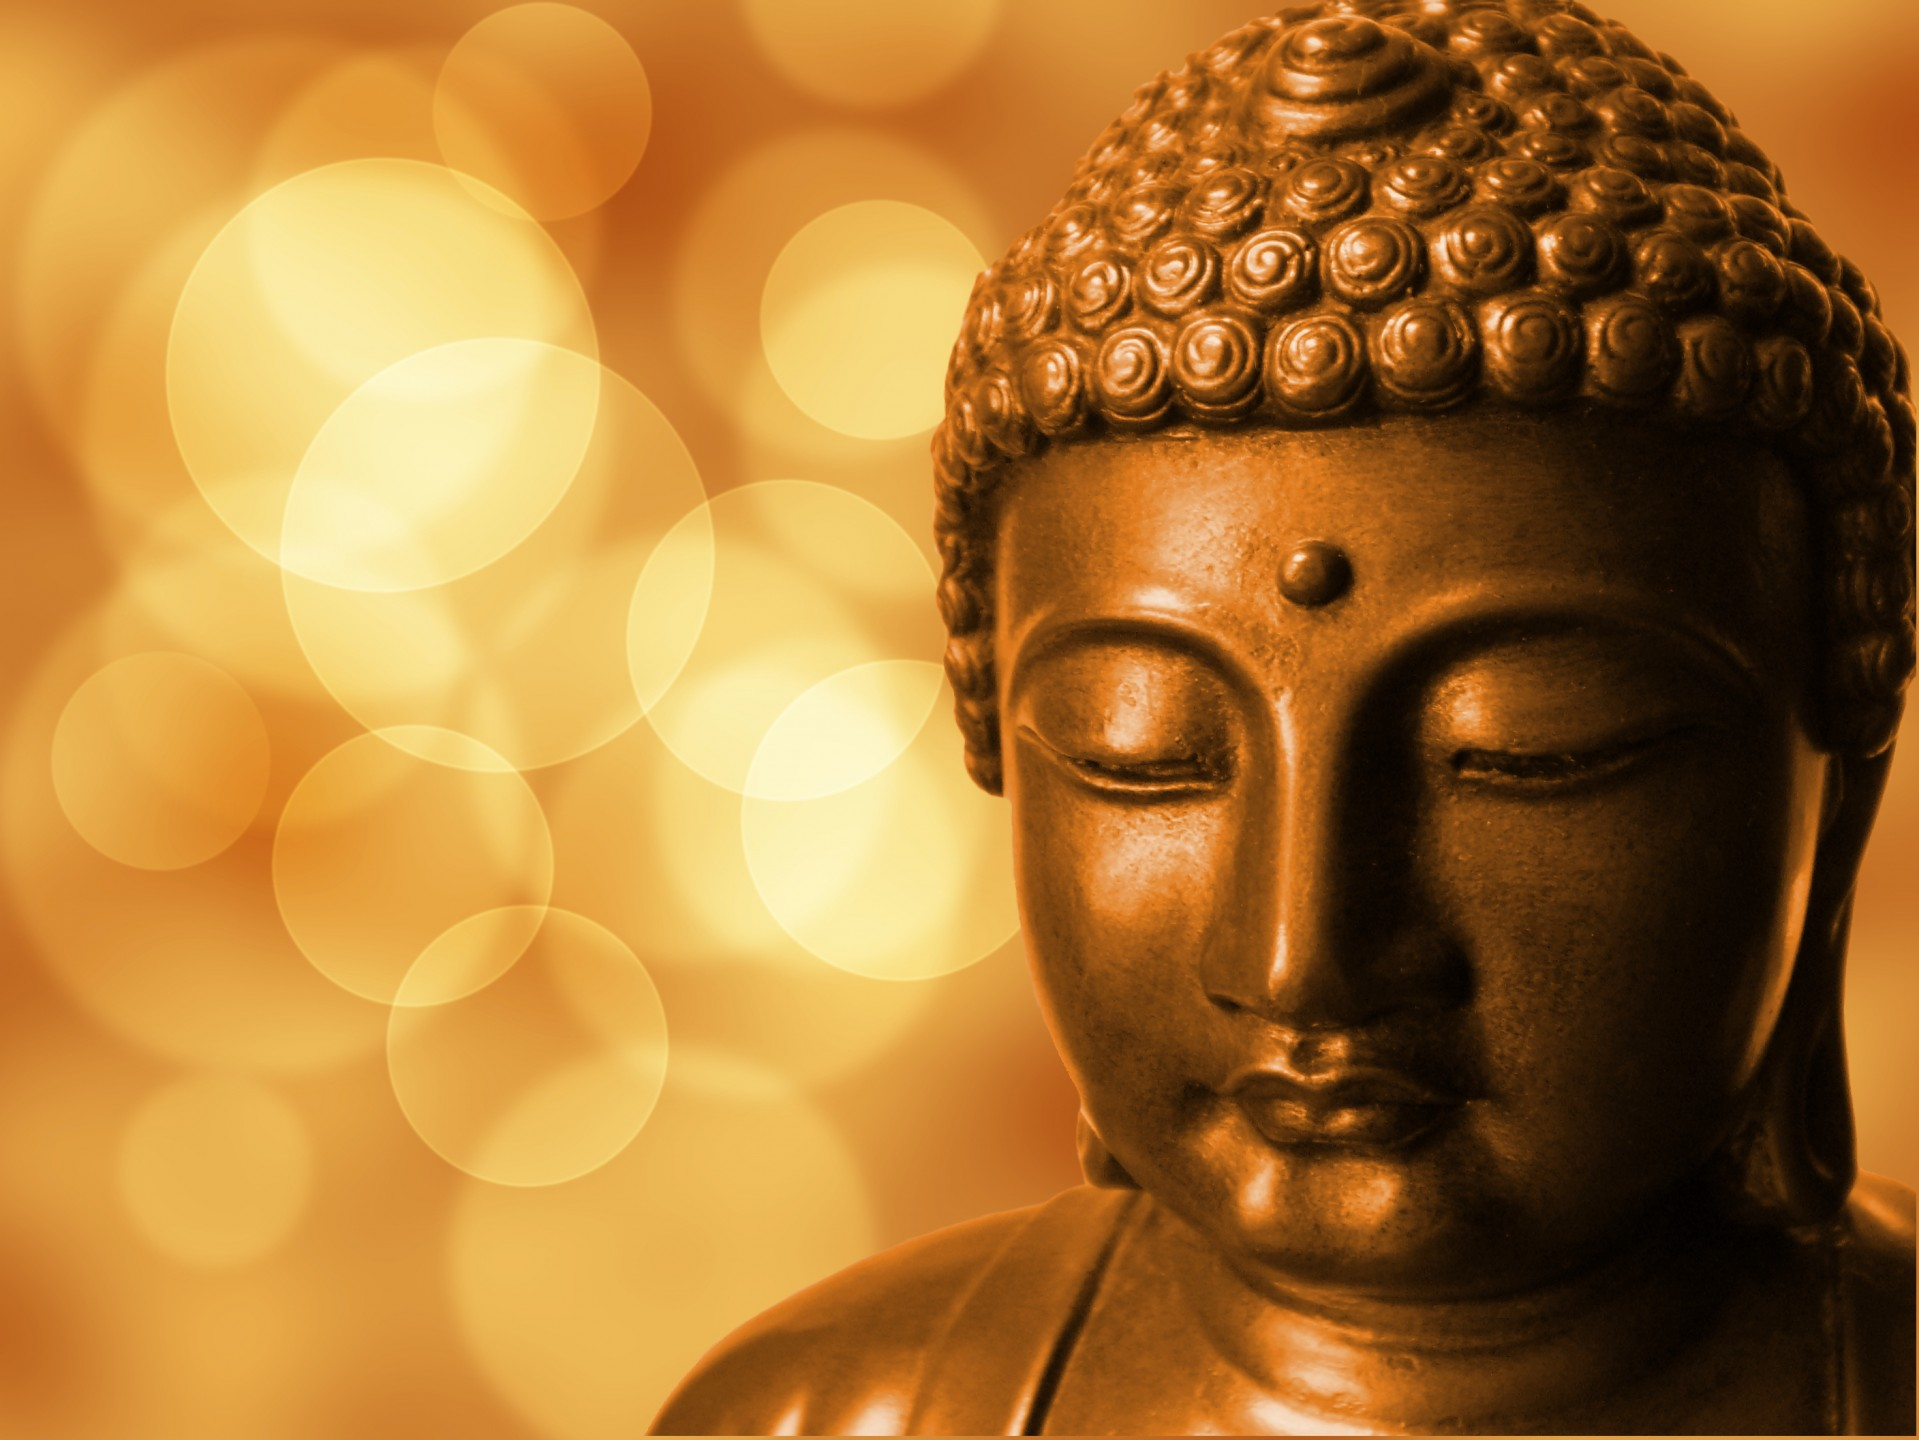 Buddha Face Free Stock Photo - Public Domain Pictures